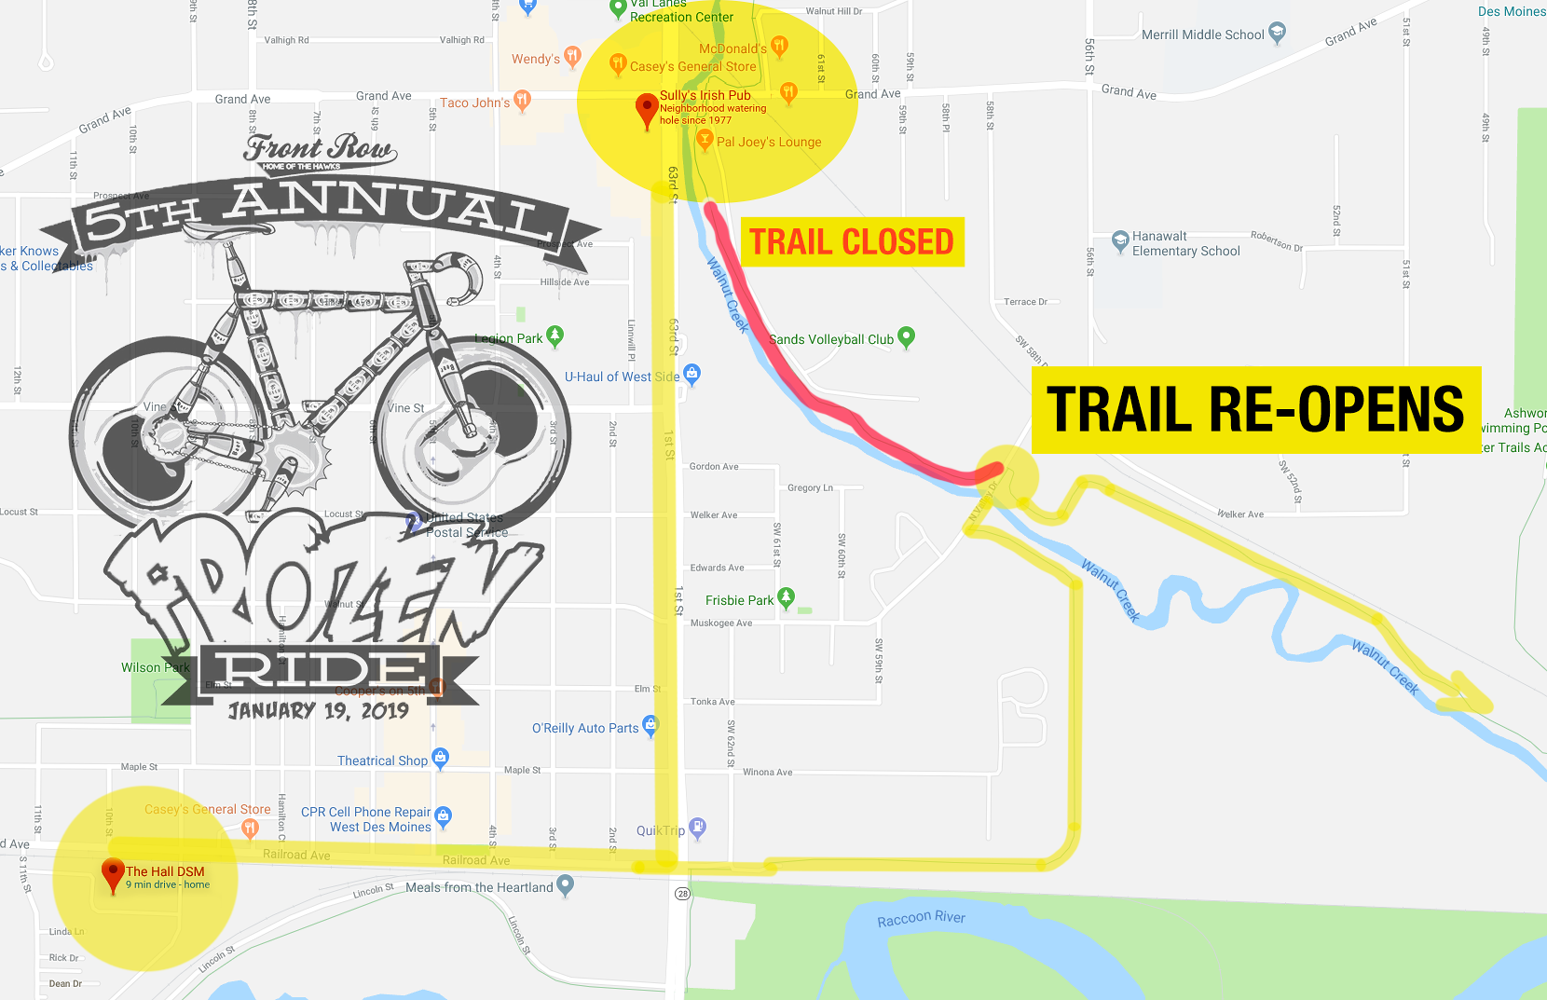 TRAIL CLOSURES SHOULD NOT IMPACT YOUR RIDE ON THE 19TH. INFO VIA DES MOINES PARKS AND REC.